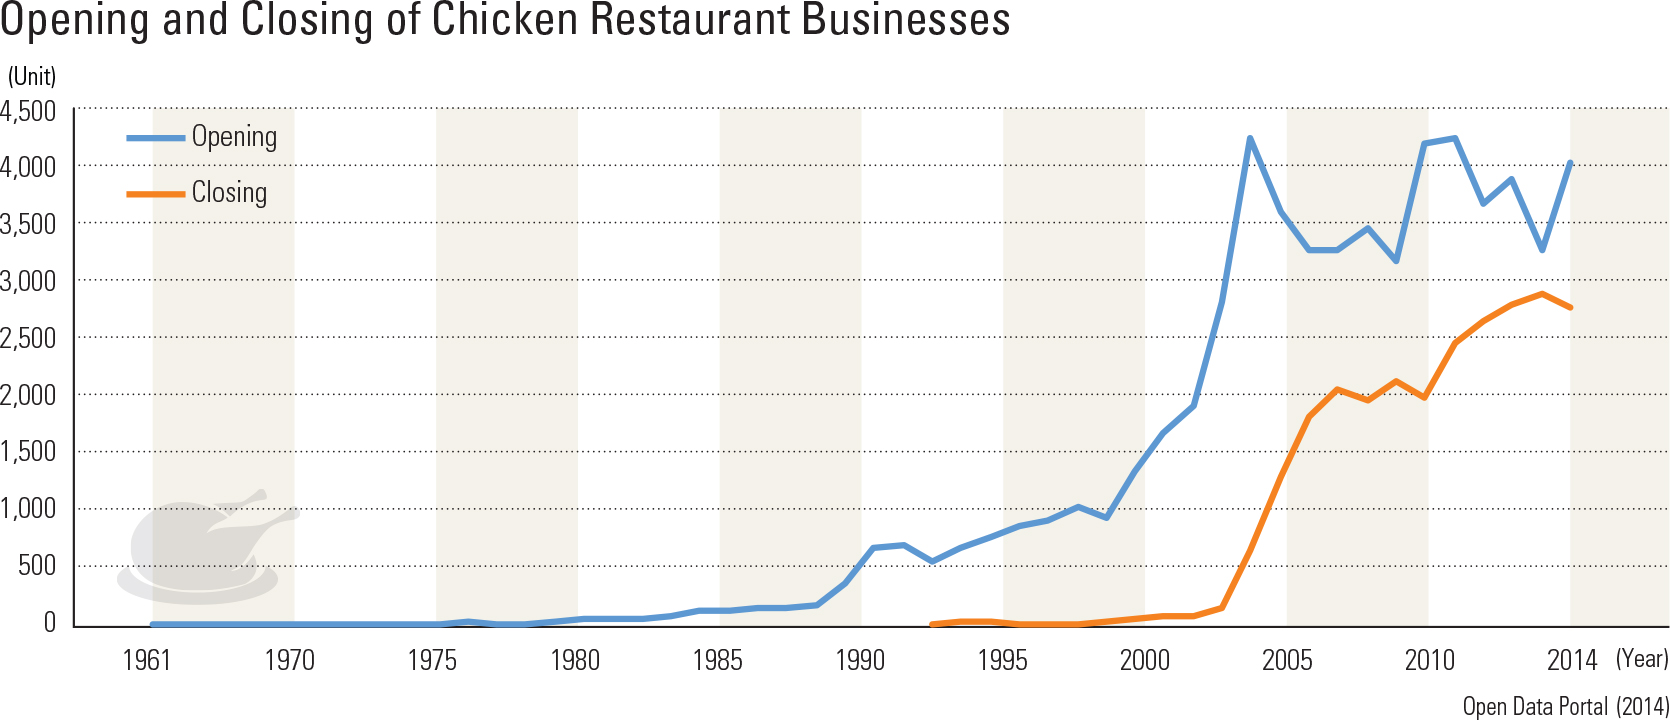 Opening and Closing of Chicken Restaurant Businesses